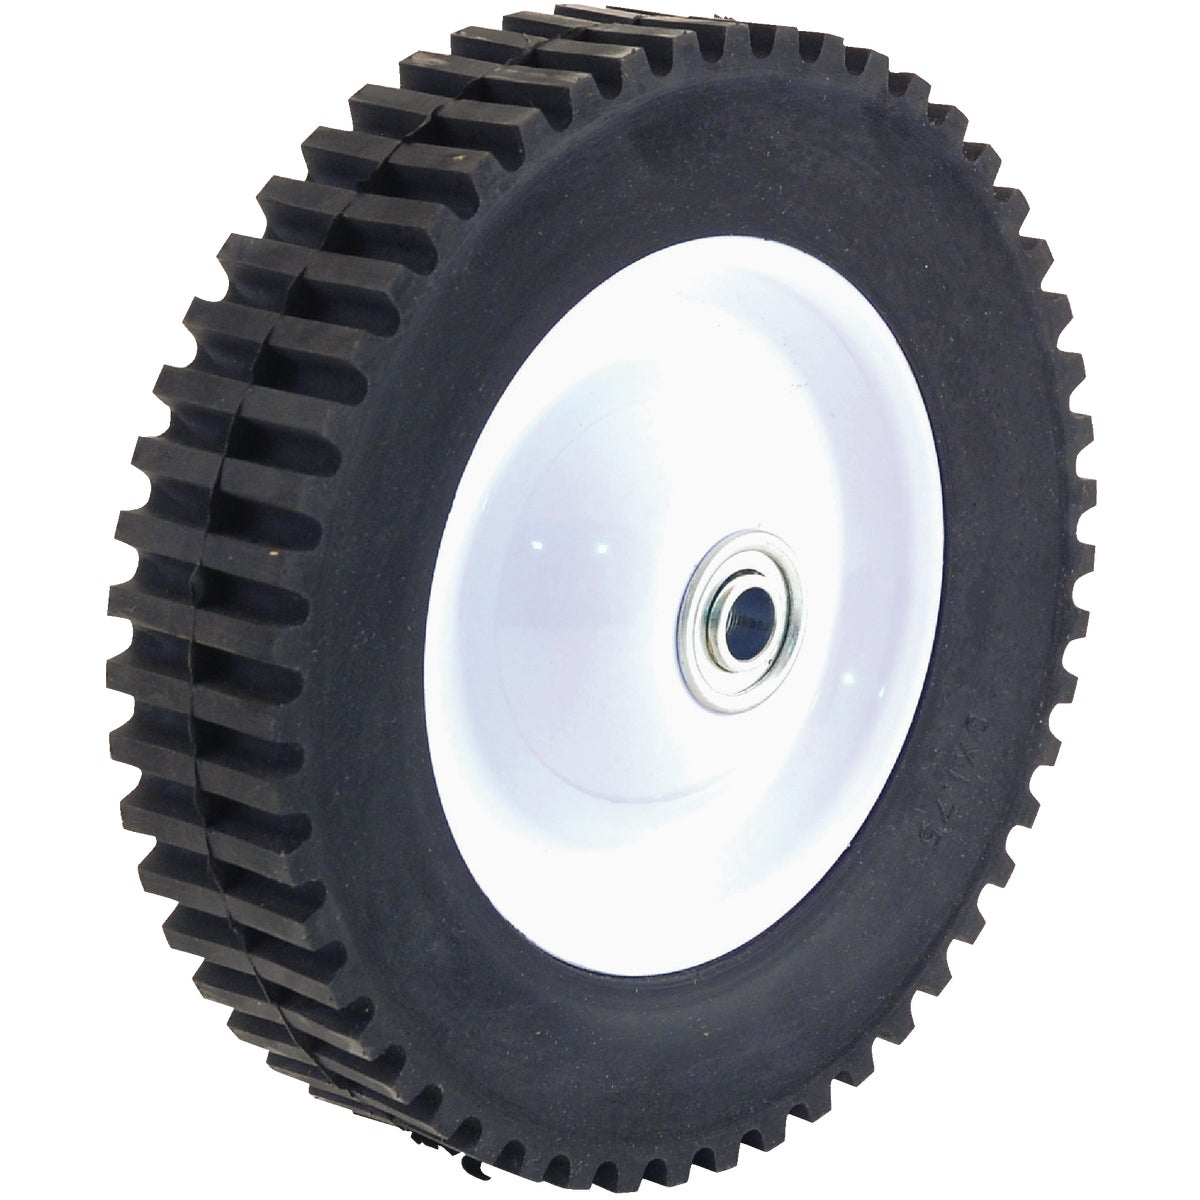 8X1.75 GEAR TREAD WHEEL